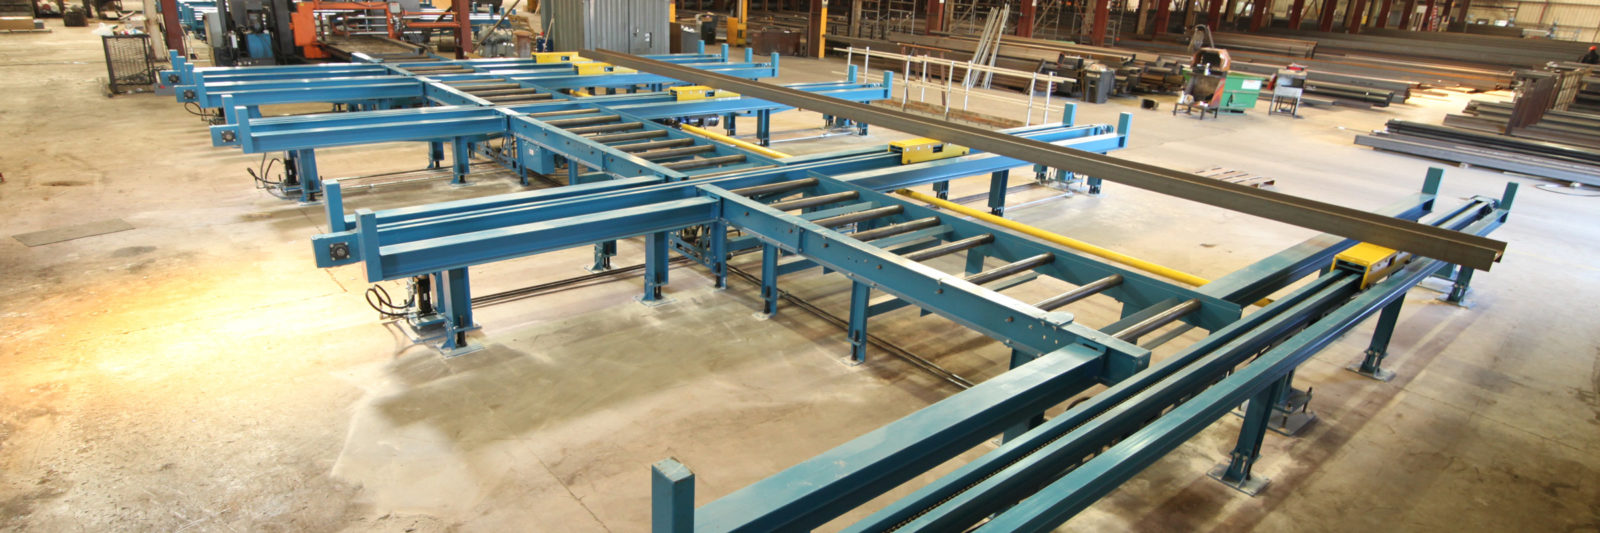 Lift and Carry Conveyor System